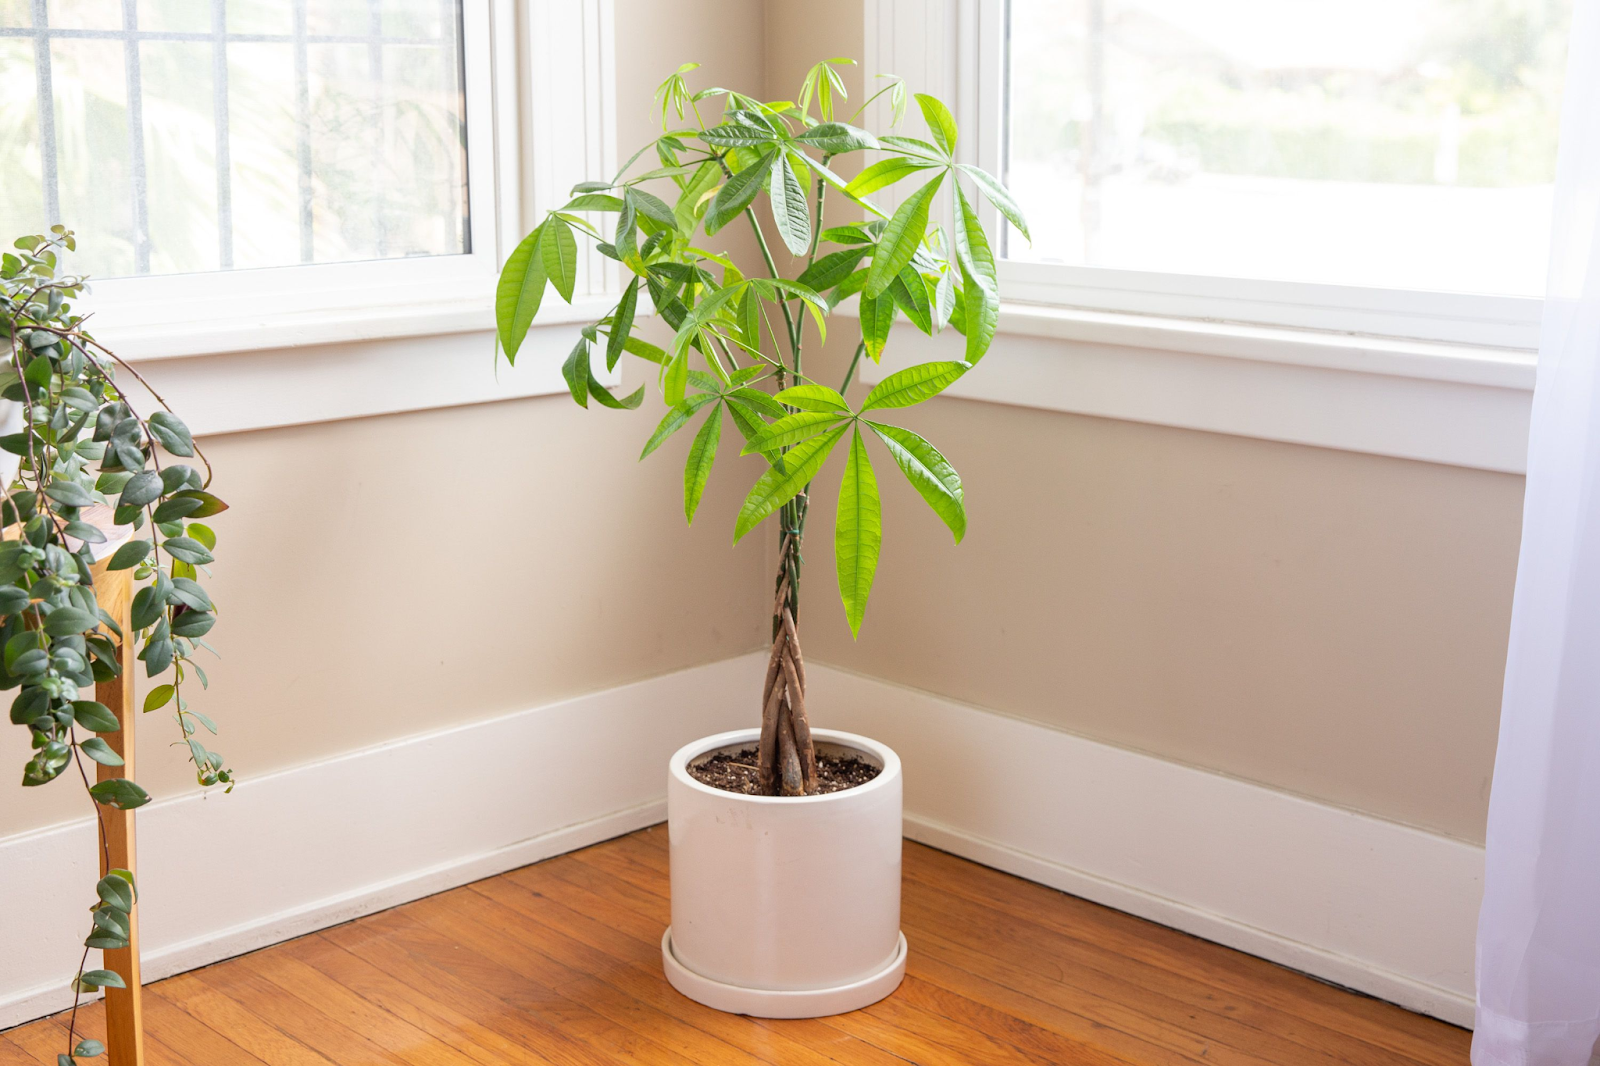 Guiana chestnut trees are a beautiful option for an indoor tree!